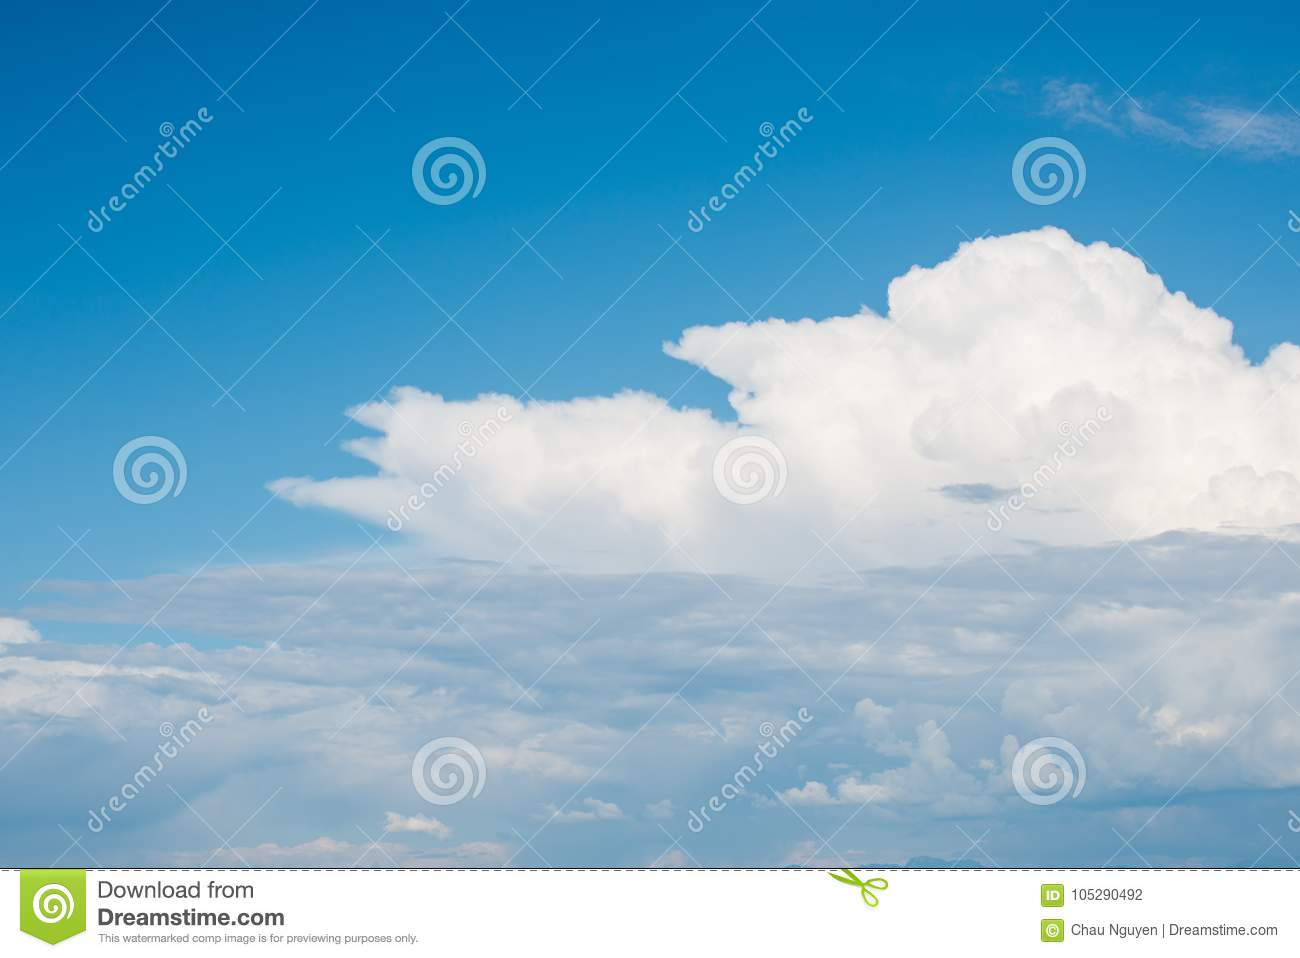 Beautifuly clear blue sky with layers of white clouds flying by